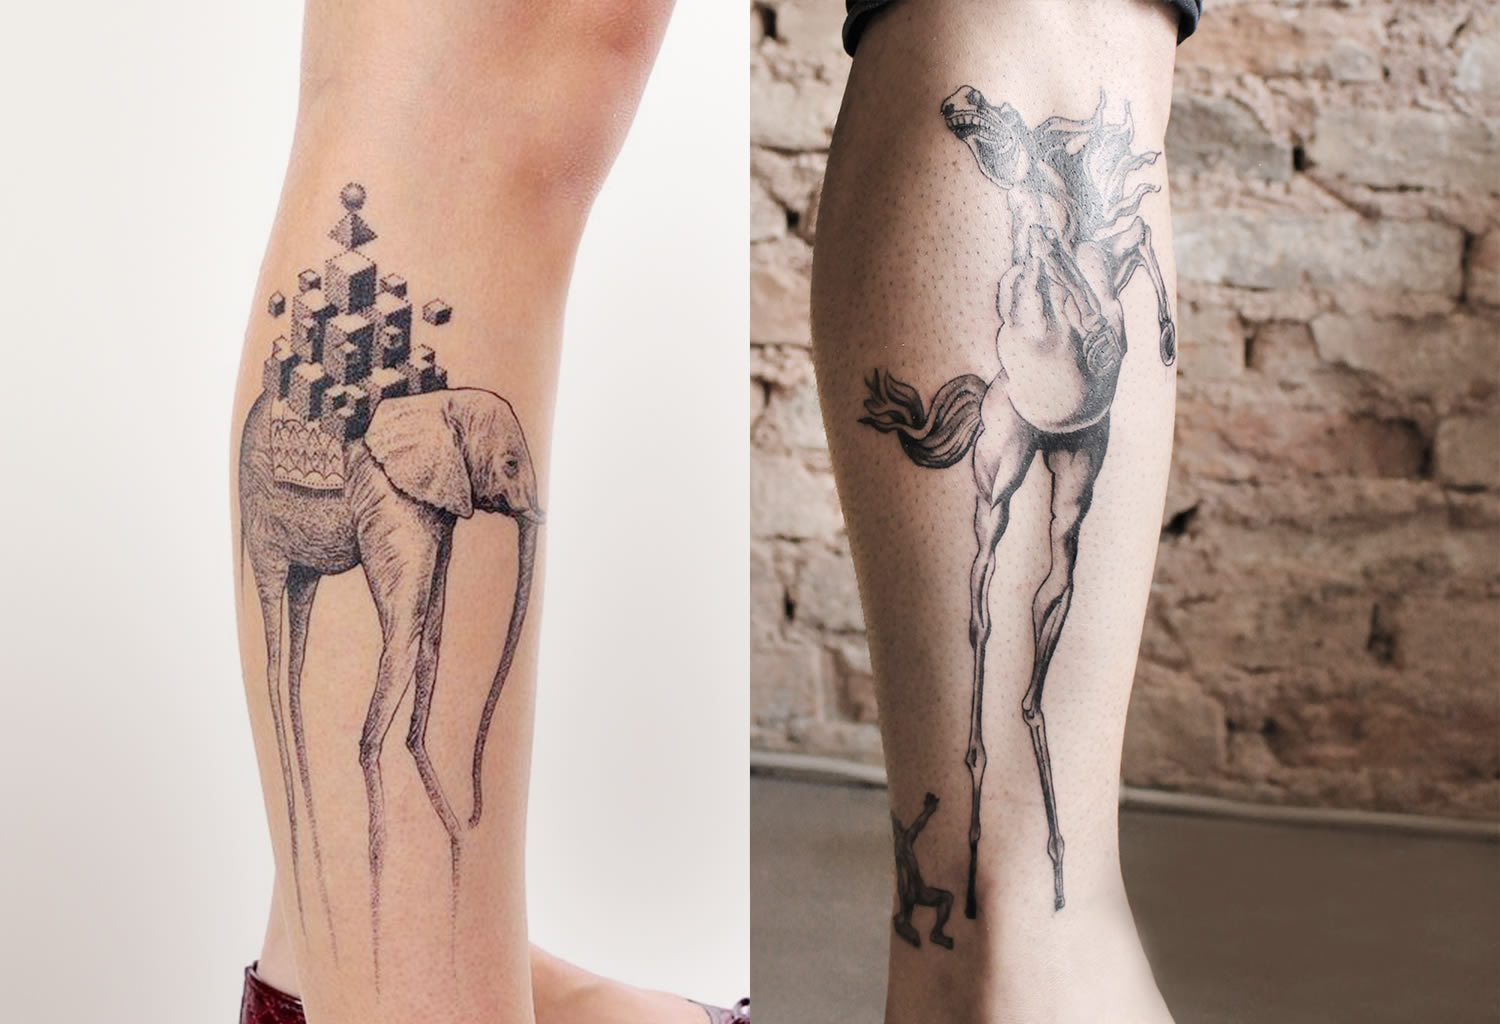 spider-leg elephant by Gregorio Marangoni and st antony temptation tattoo by grim tattoo